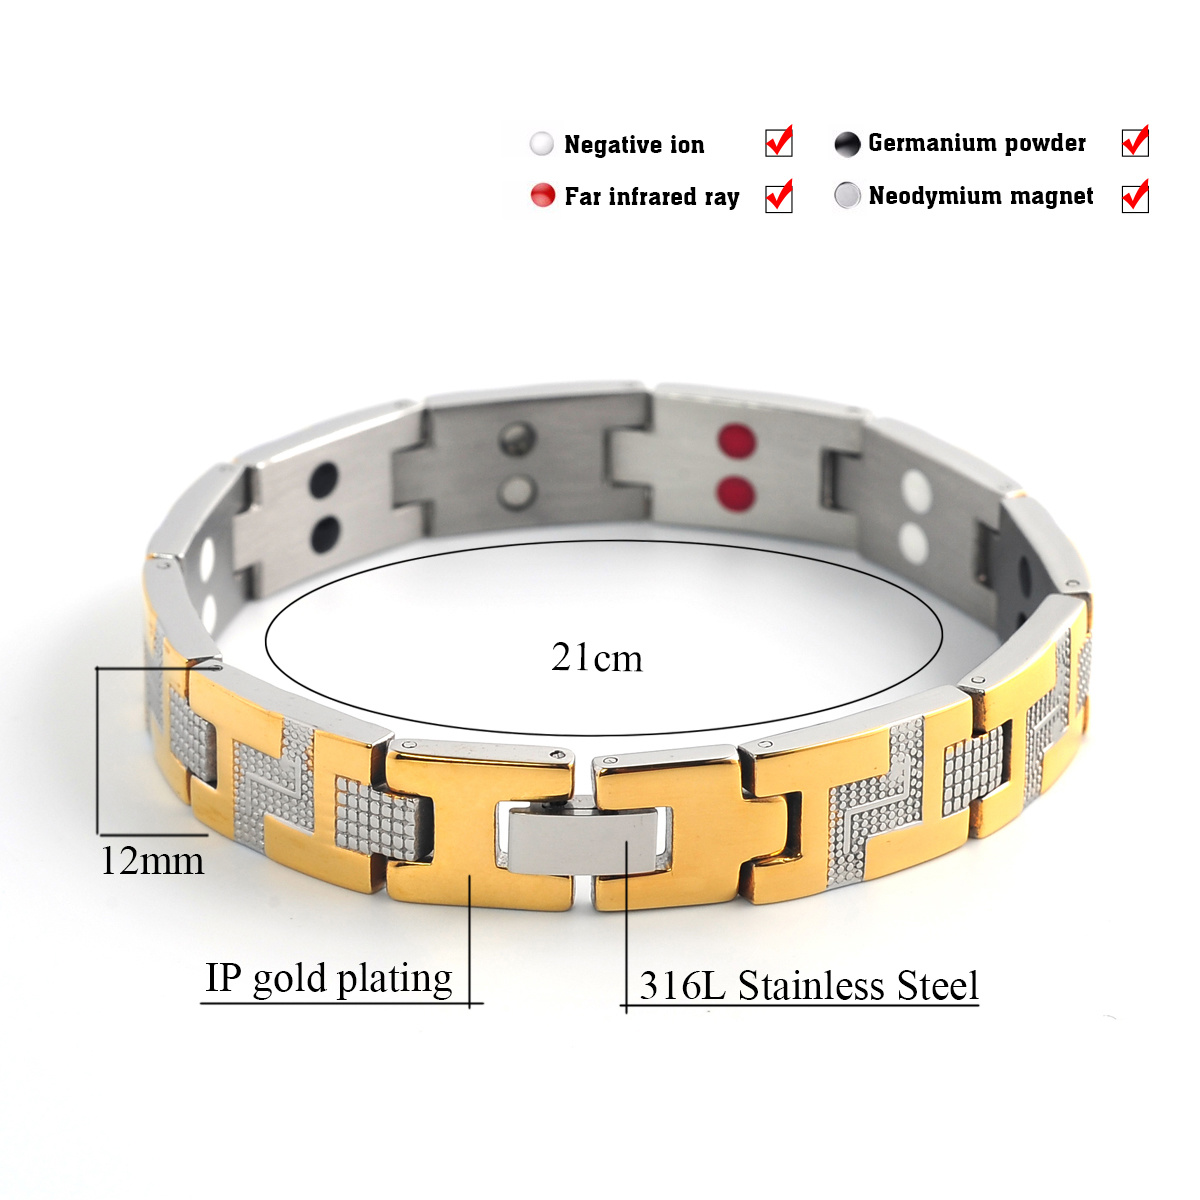 New Men′s 316L Stainless Steel Bracelet with 4in1 Bio Element